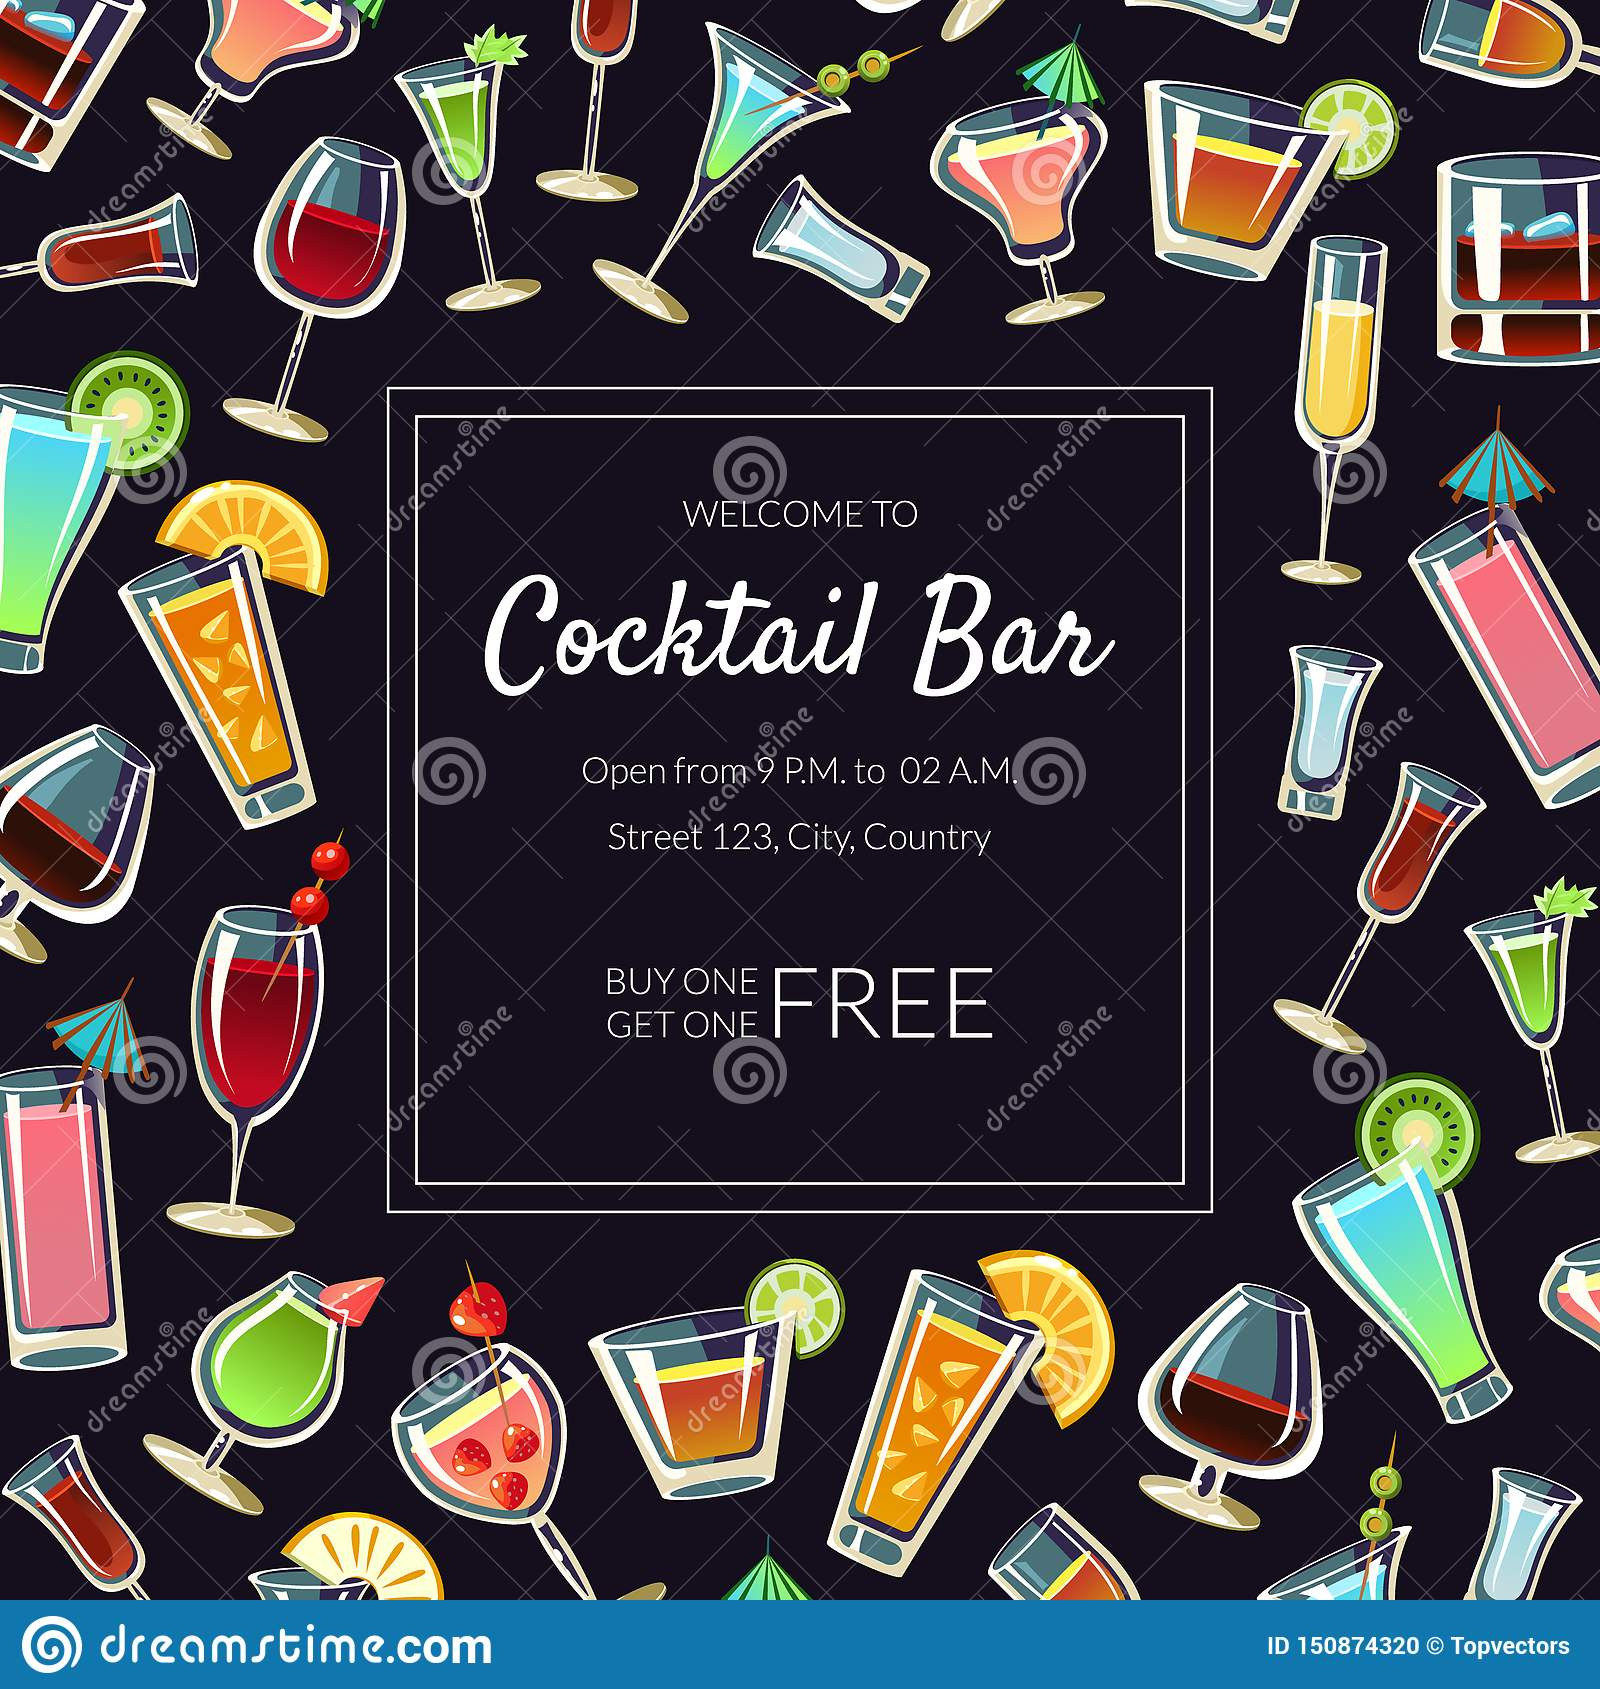 Welcome To Cocktail Bar Banner Template Alcoholic Beverages